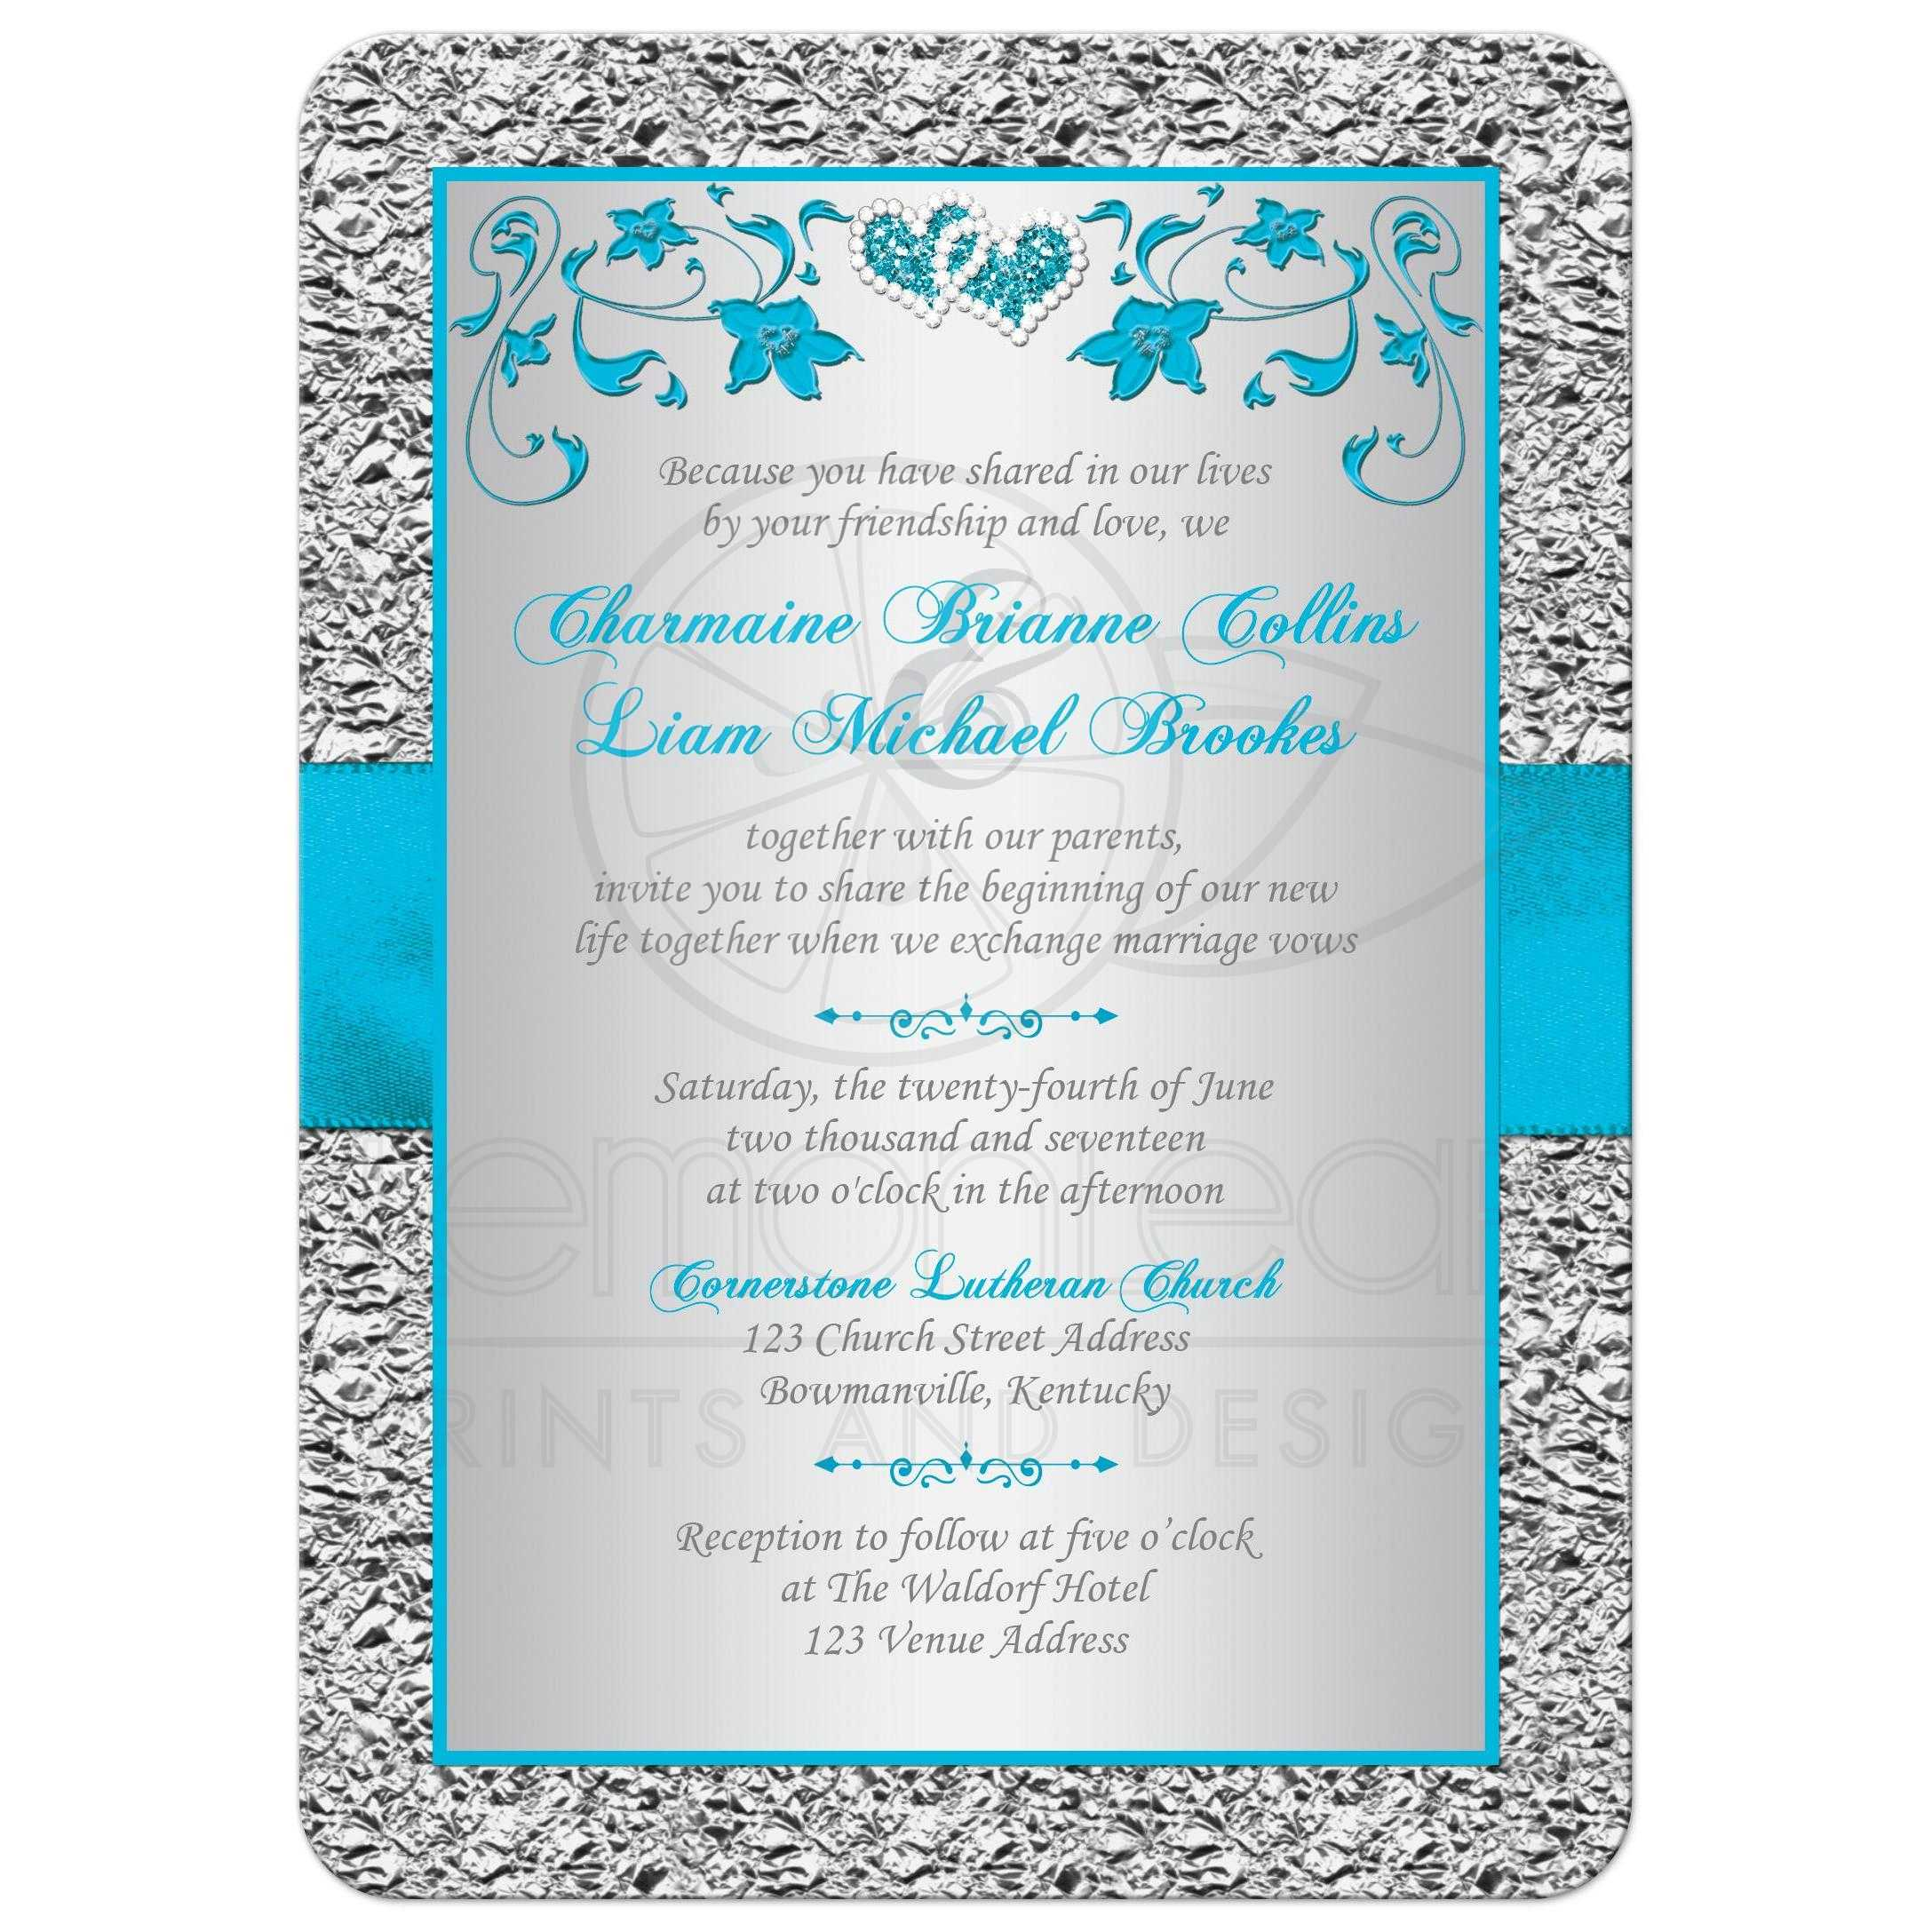 Good ... Turquoise Blue And Silver Gray Floral Wedding Invite With Teal Ribbon,  Bow, And Glittery